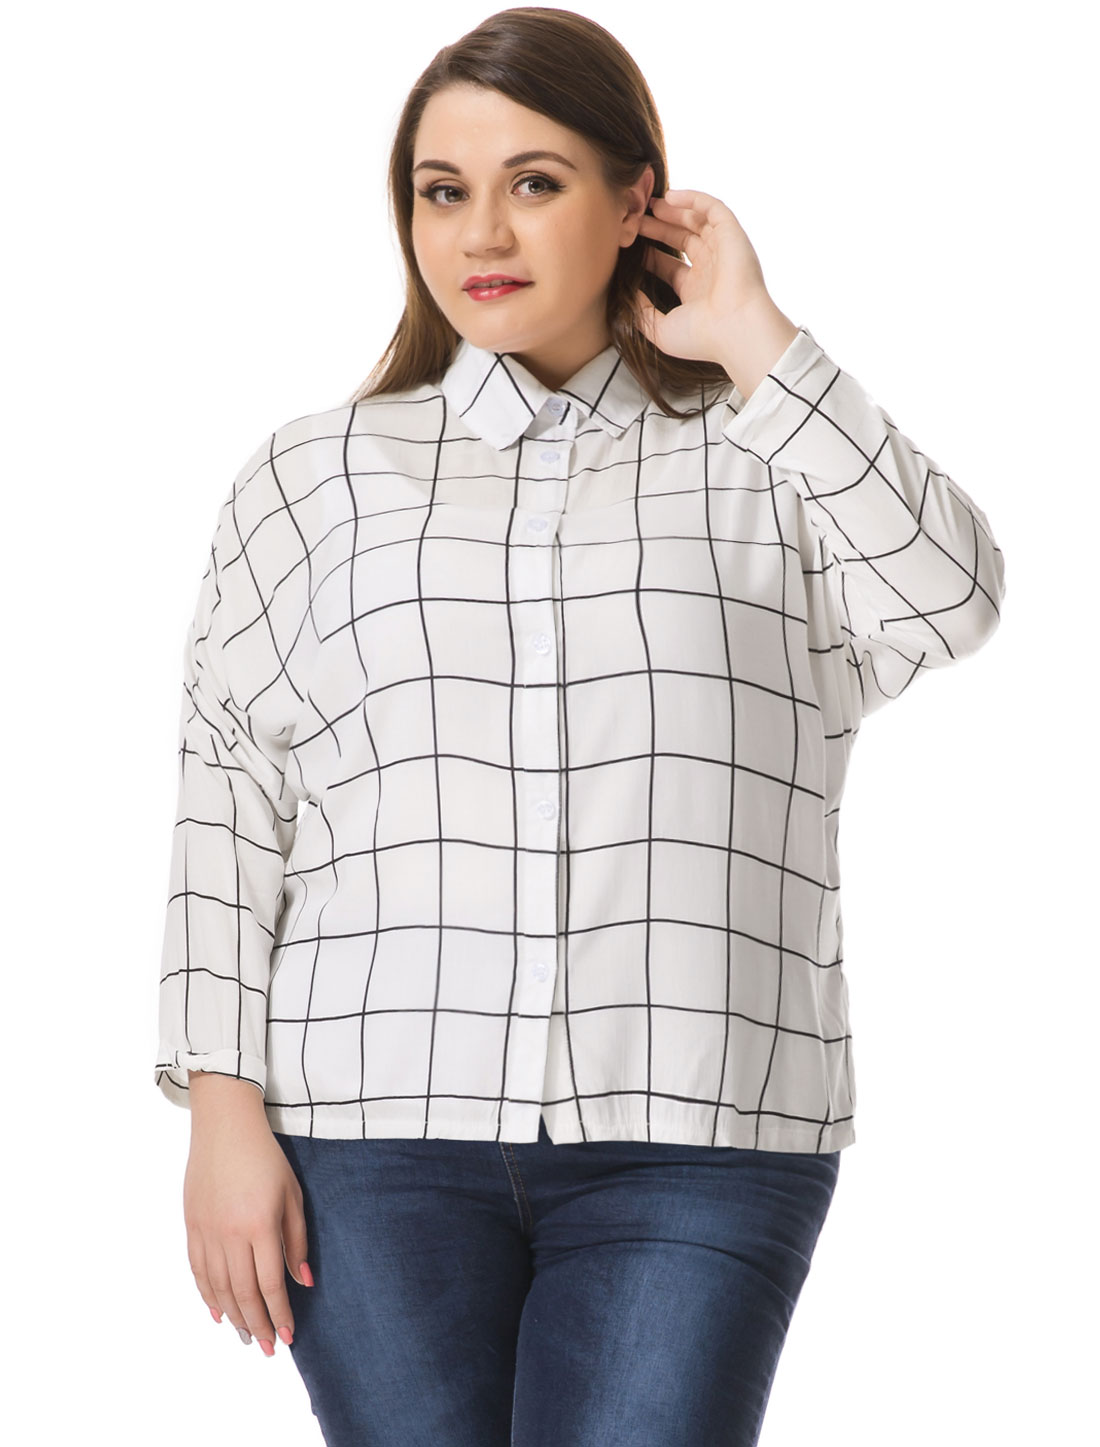 Women Plus Size Hi-Lo Hem Batwing Sleeves Checked Shirt White 2X